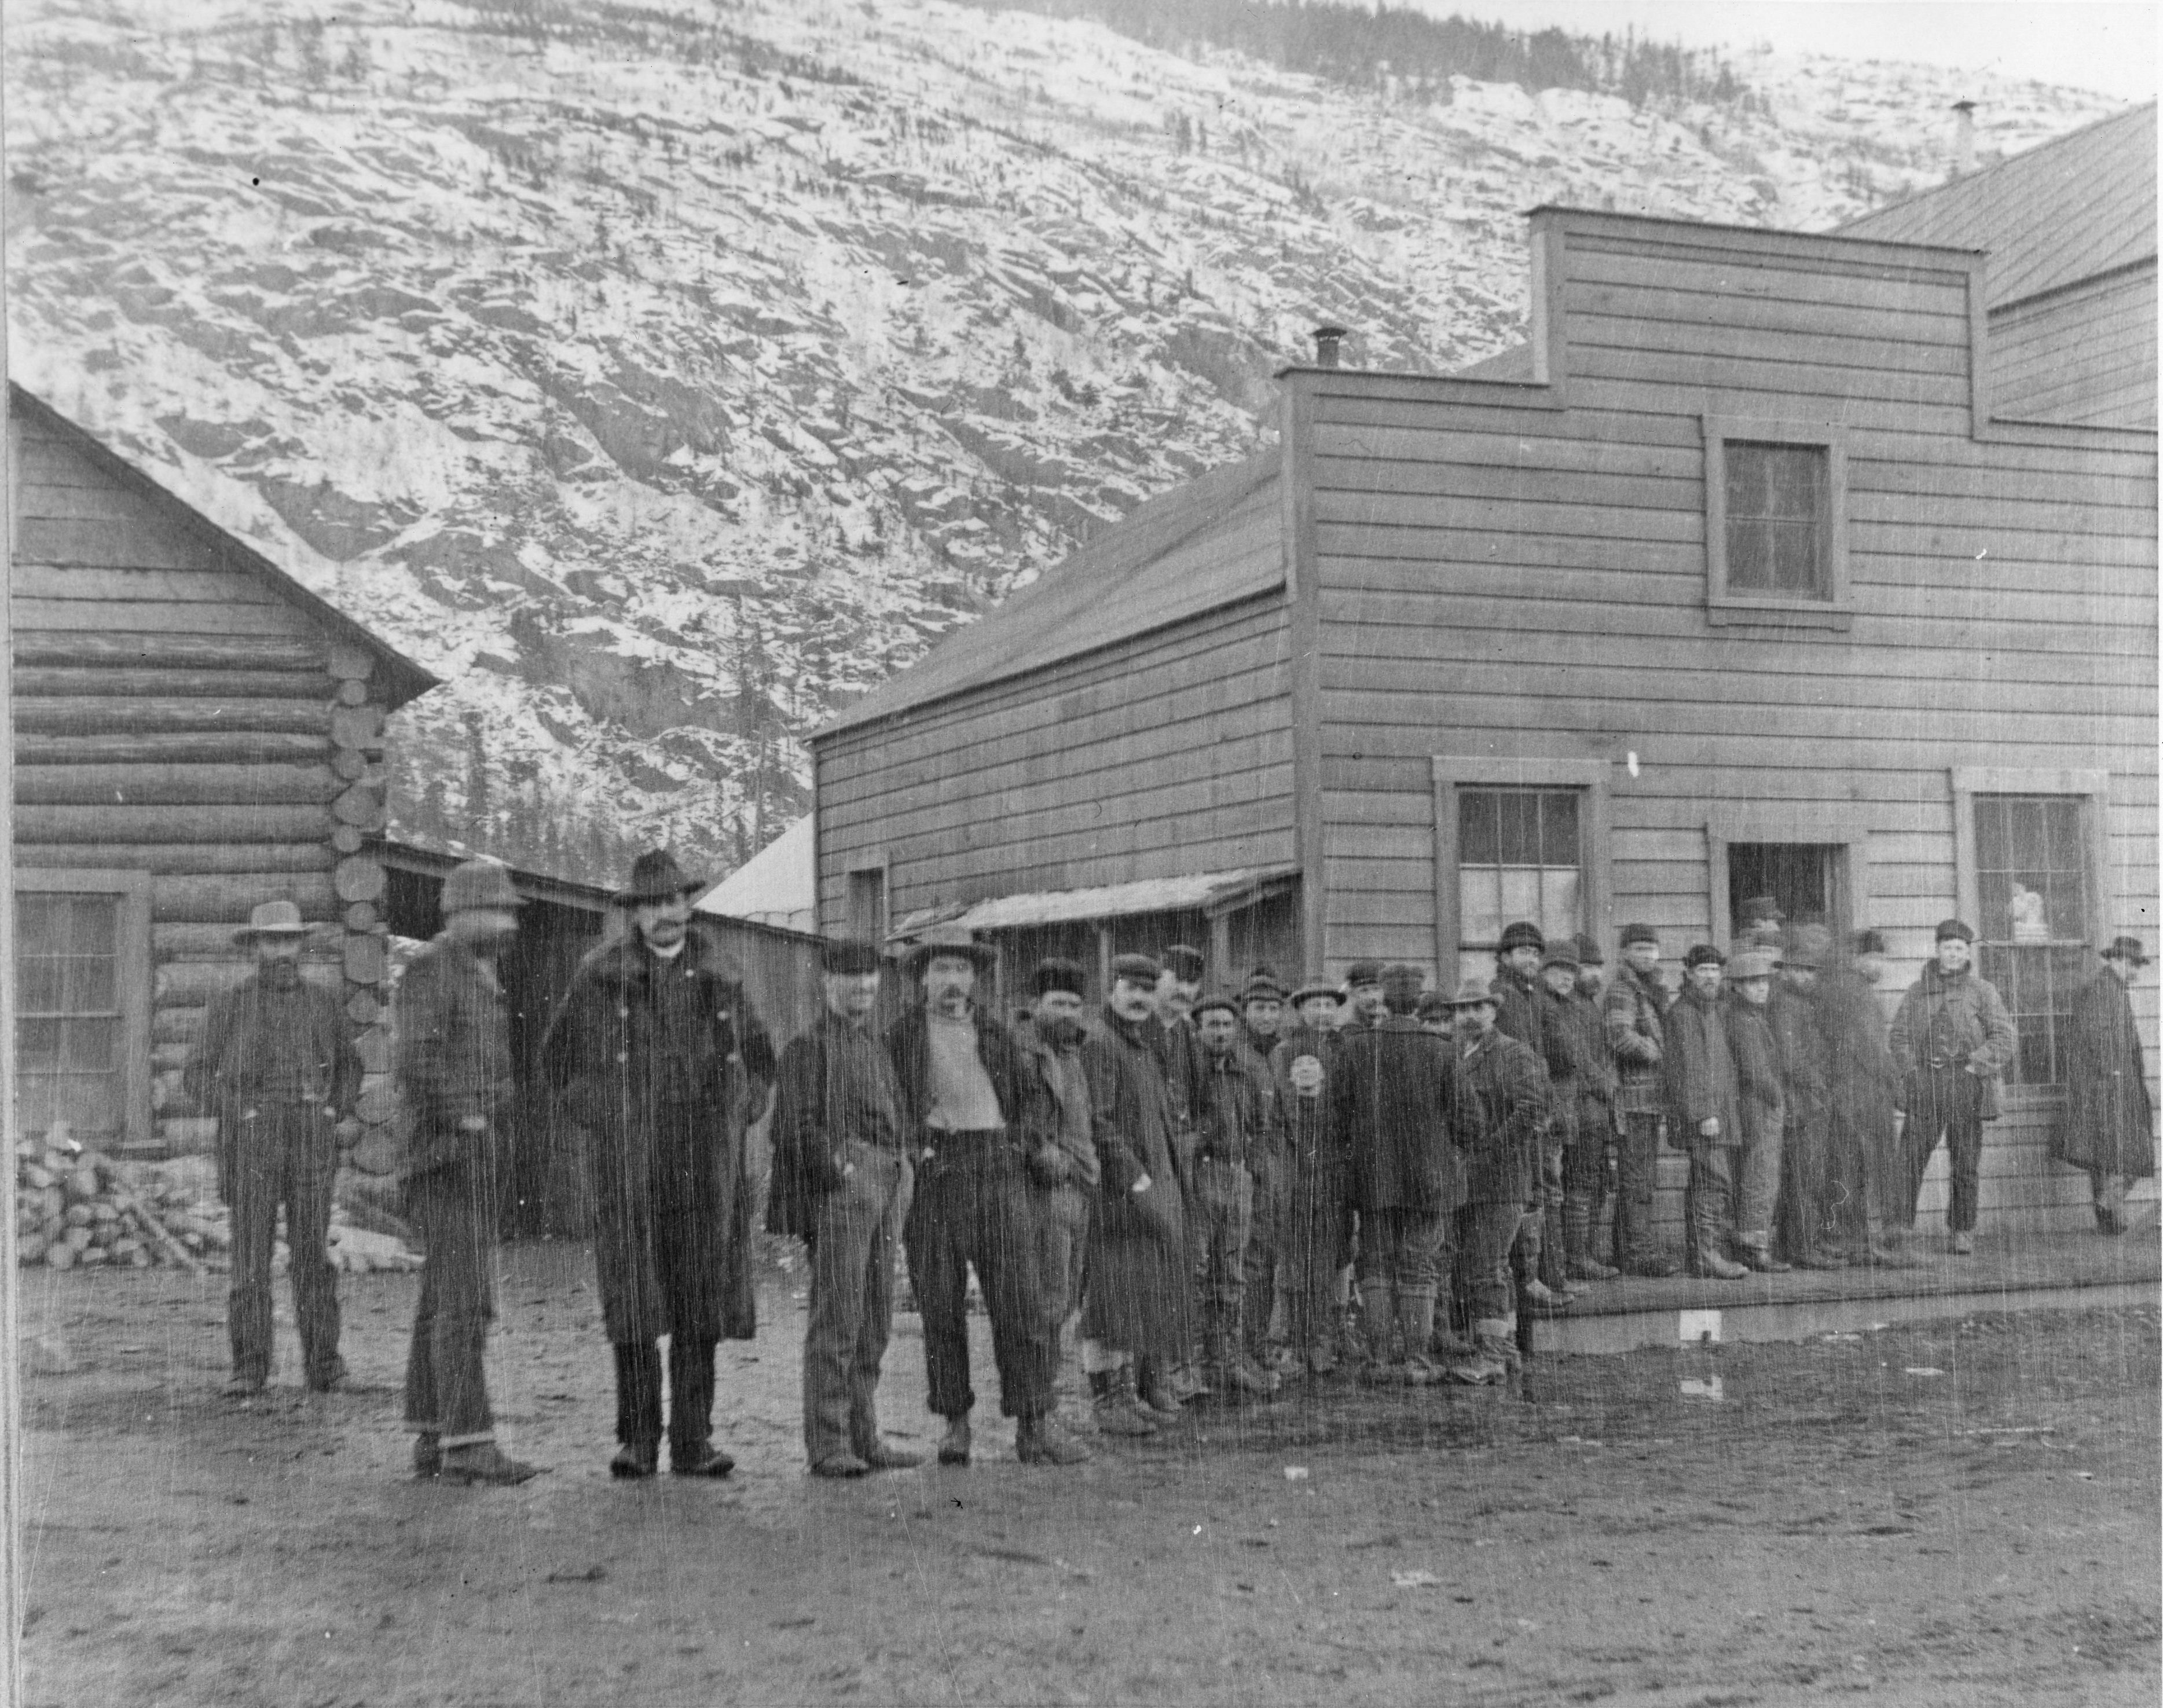 Men stand in a line in front of a wooden building in winter